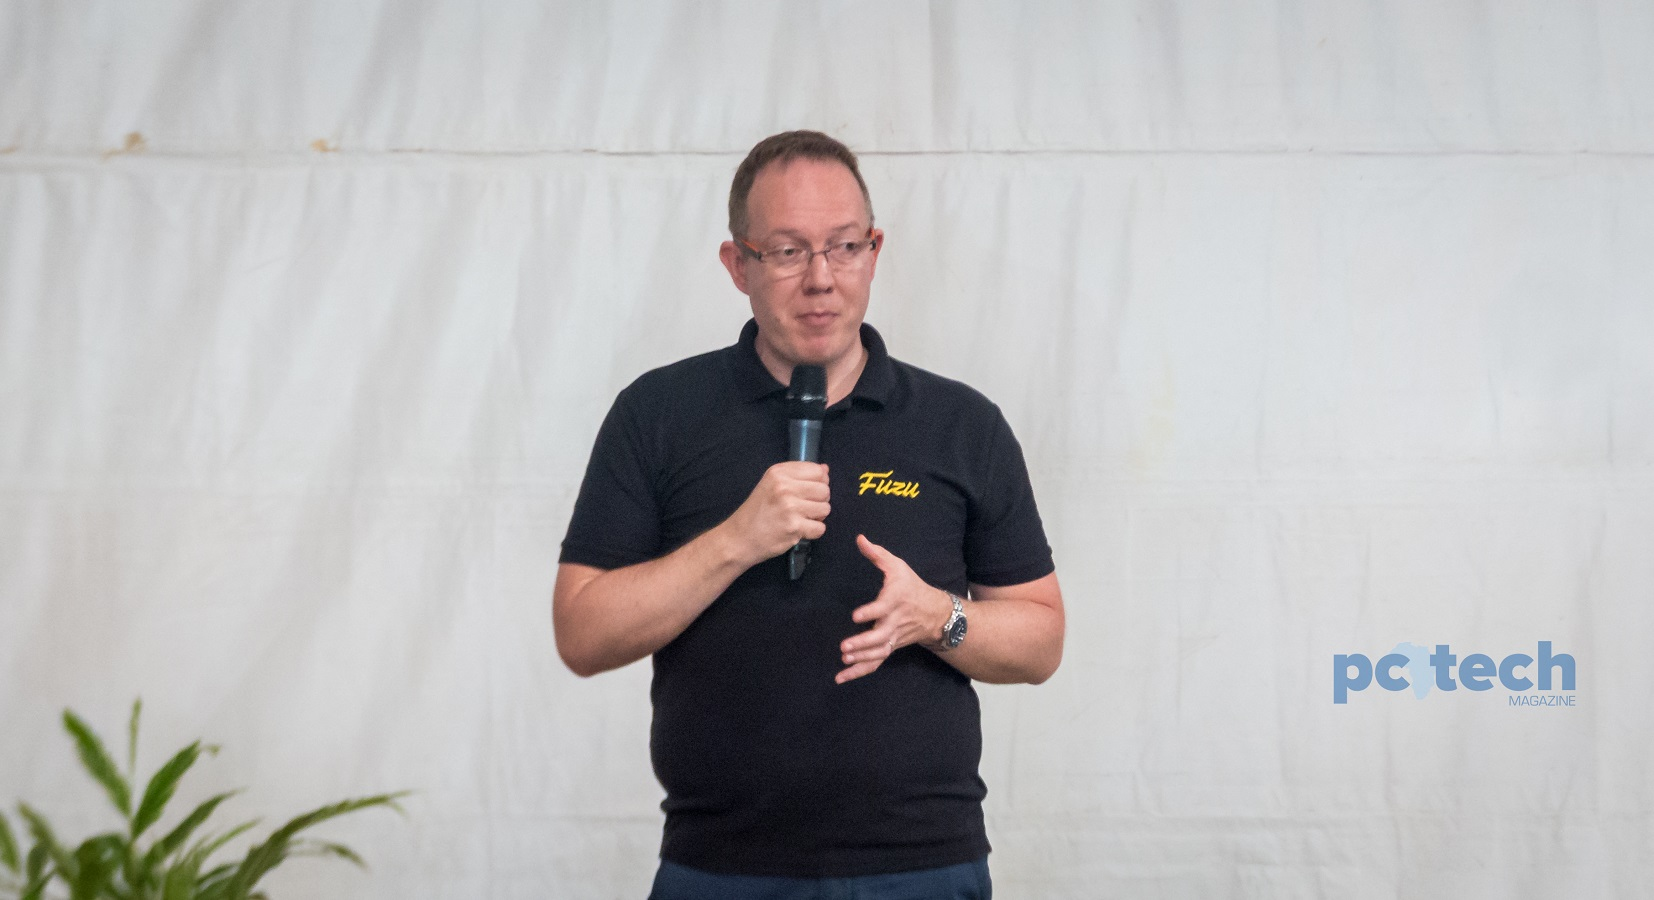 Edward Vaisberg - FUZU Chief Operating Officer takes a brief interview during the launch of its platform in Uganda on Thursday 17th, May 2018.